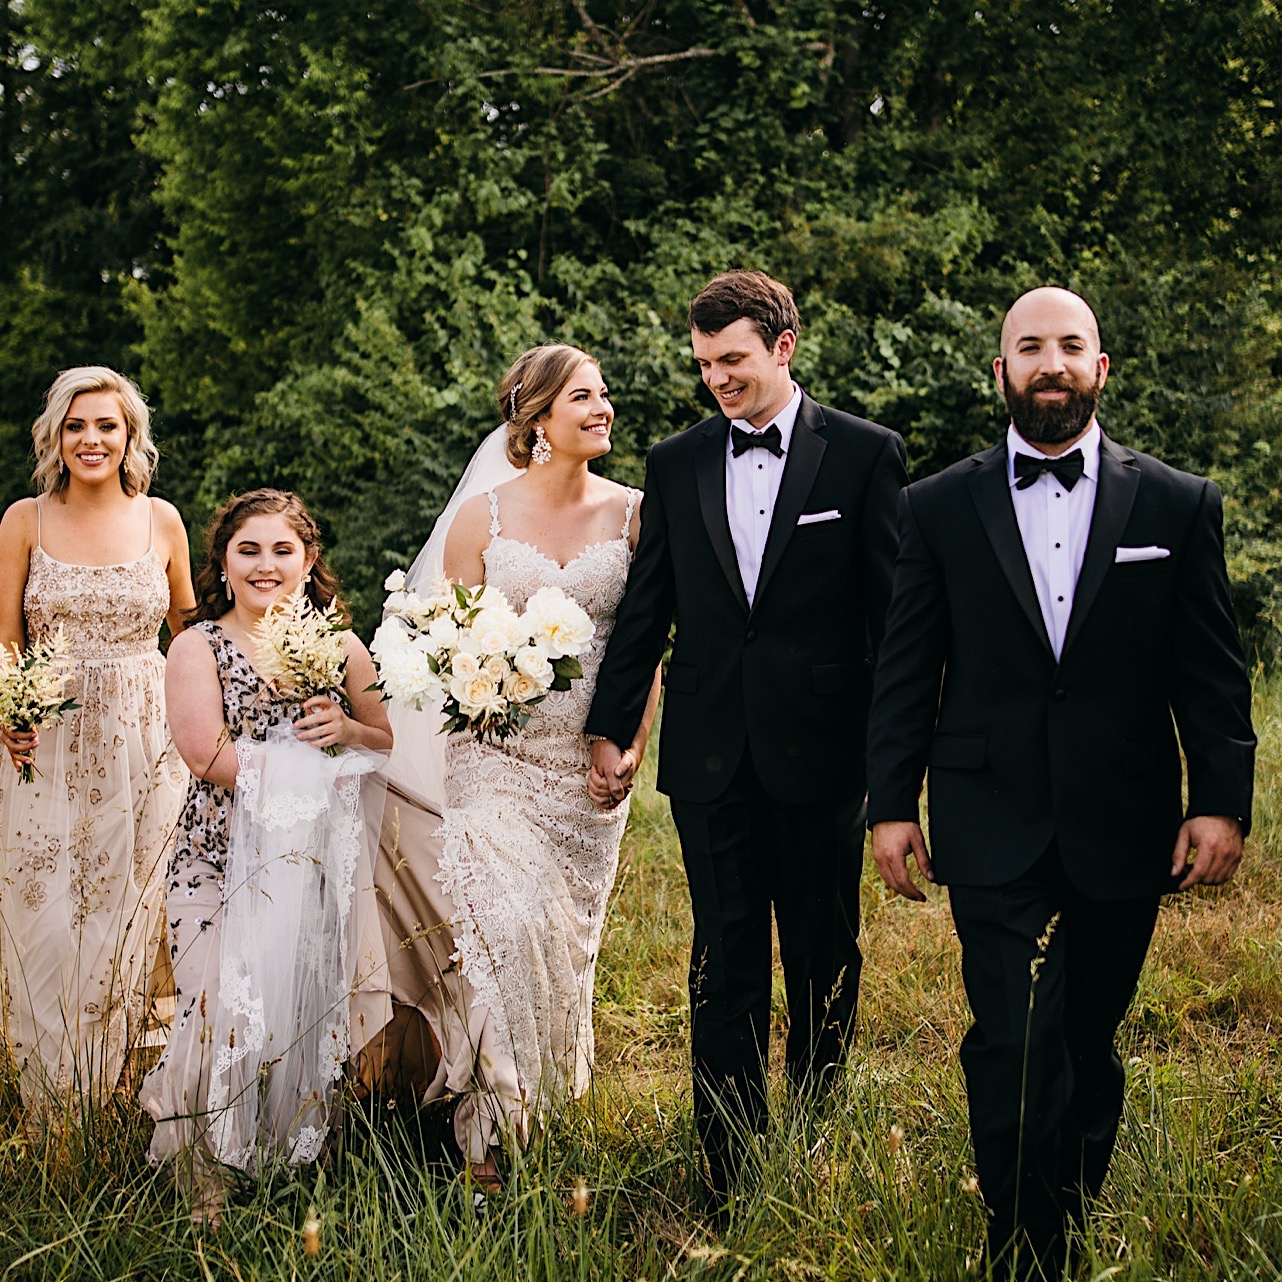 bride in lacy wedding gown smiles up a groom as they and their bridal party walk in a grassy field